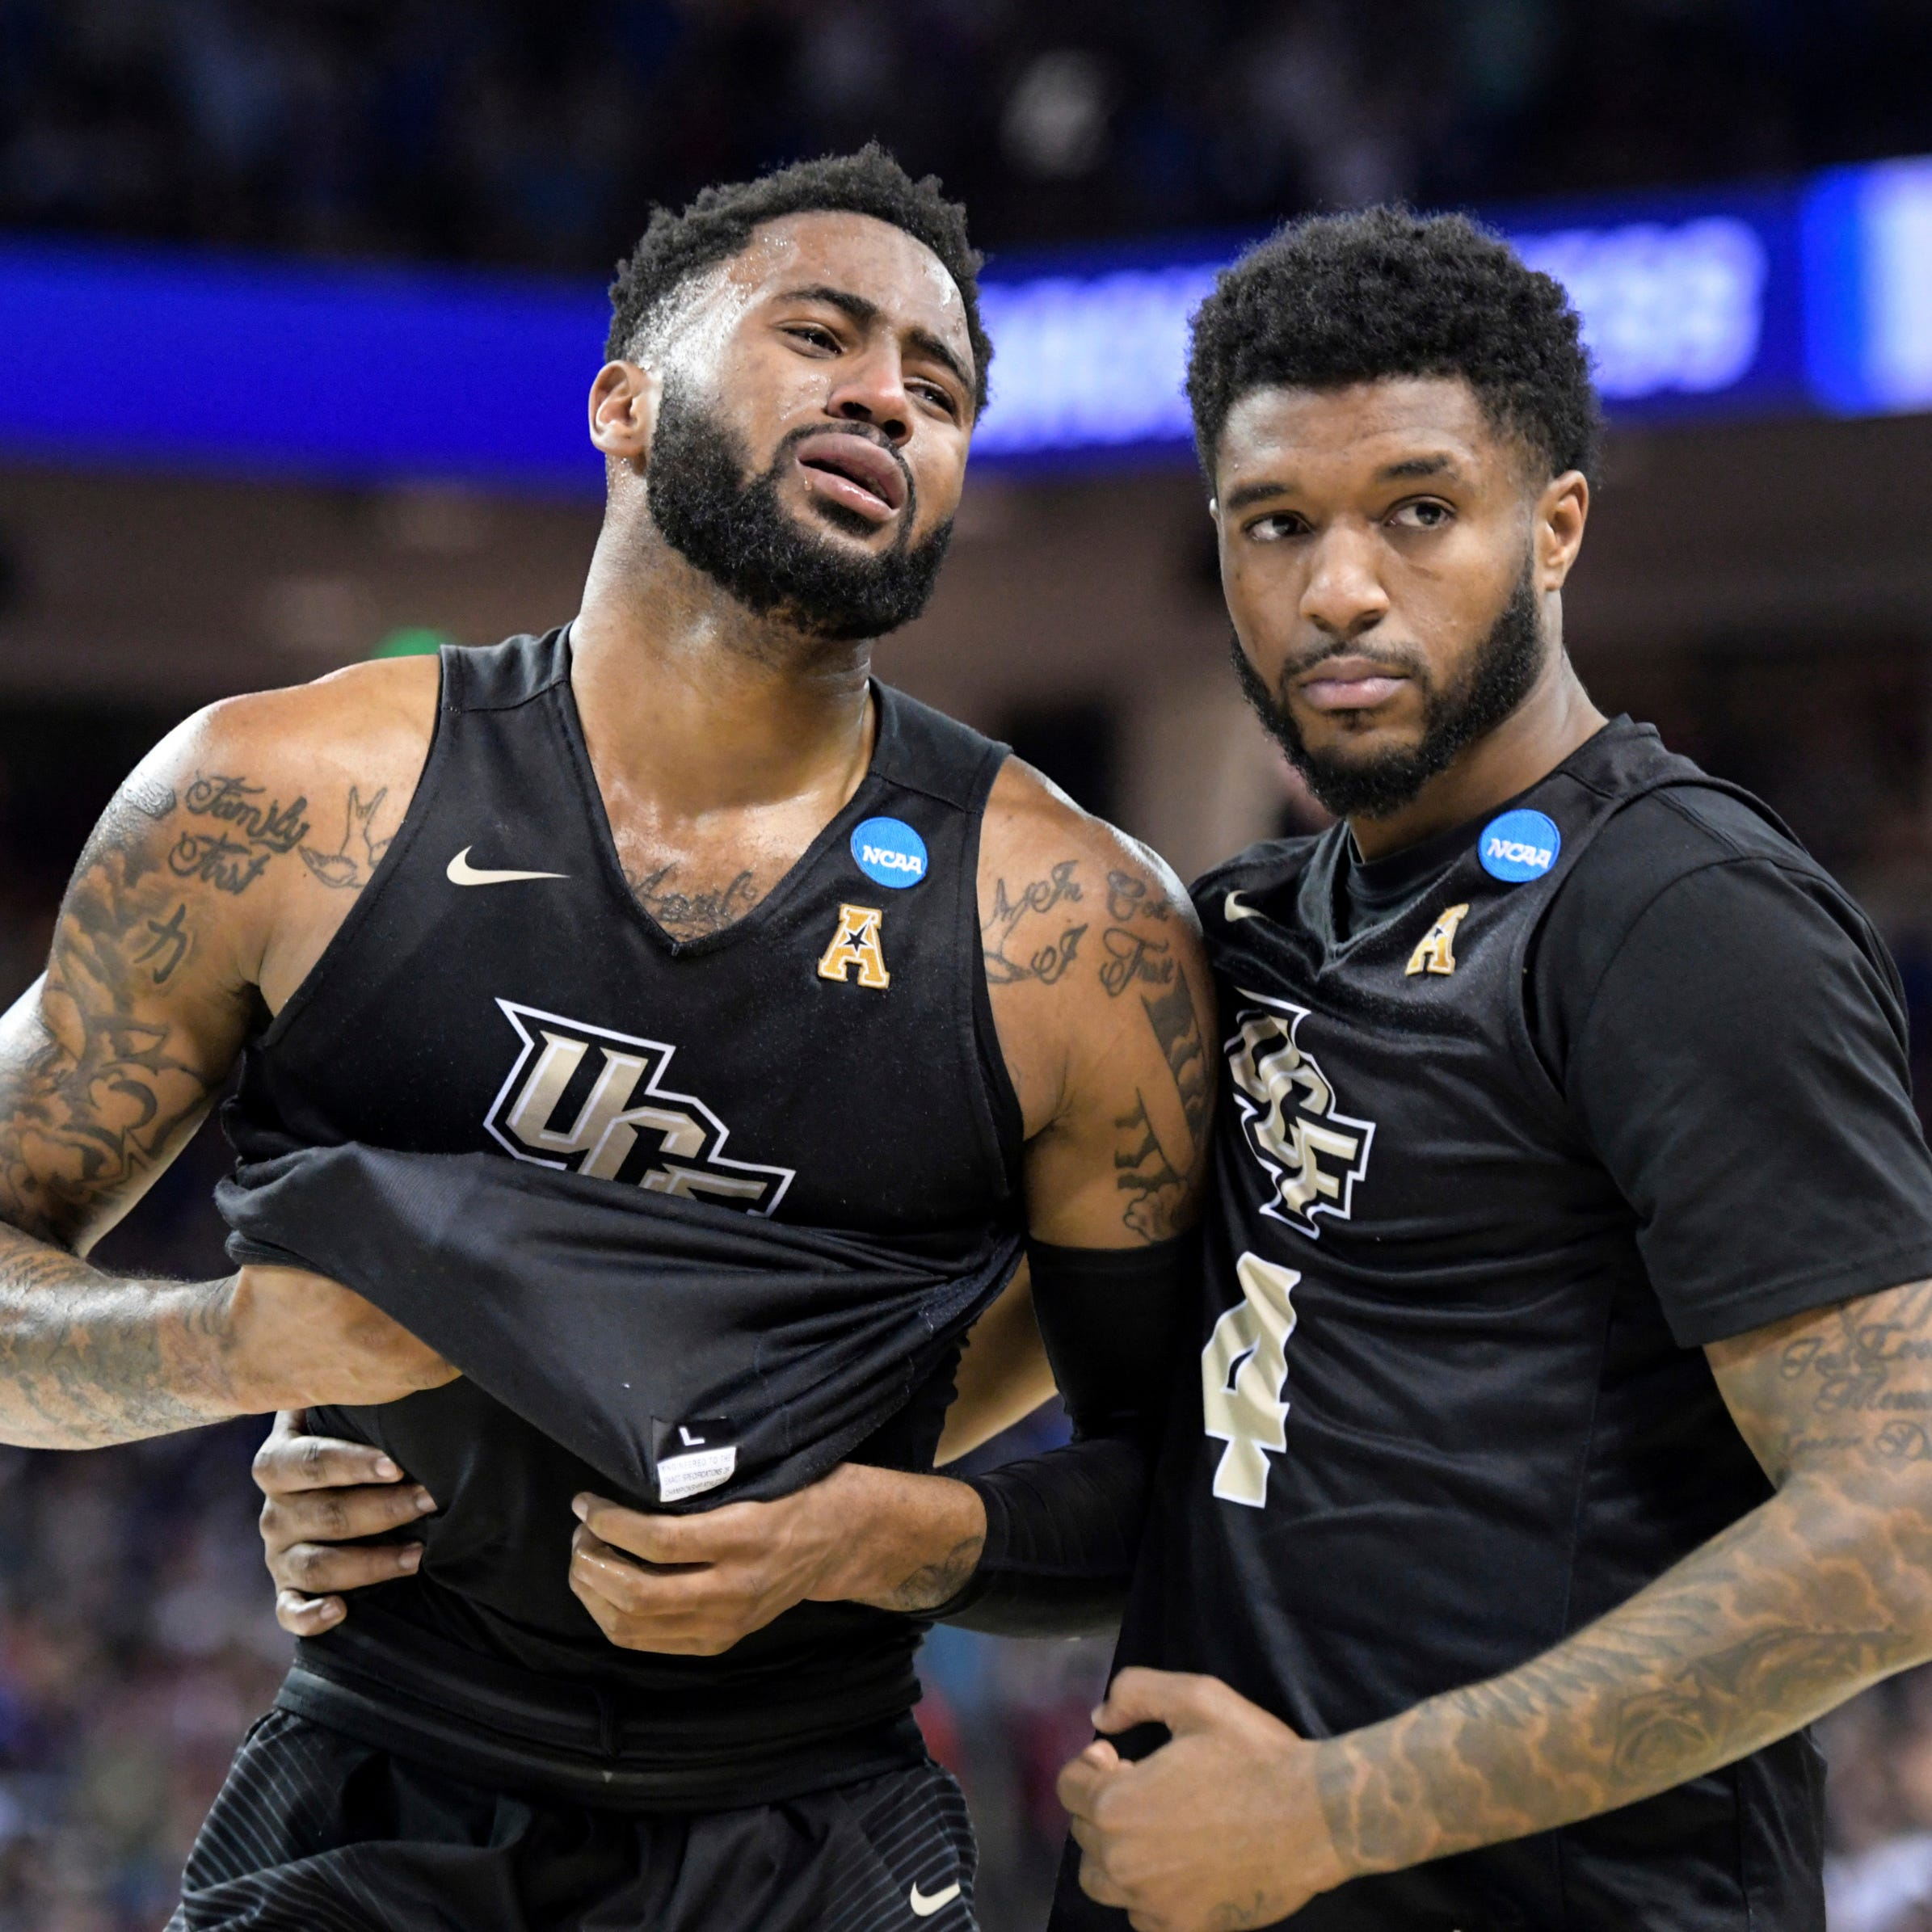 Sunday's NCAA Tournament: No. 1 Duke survives UCF upset bid